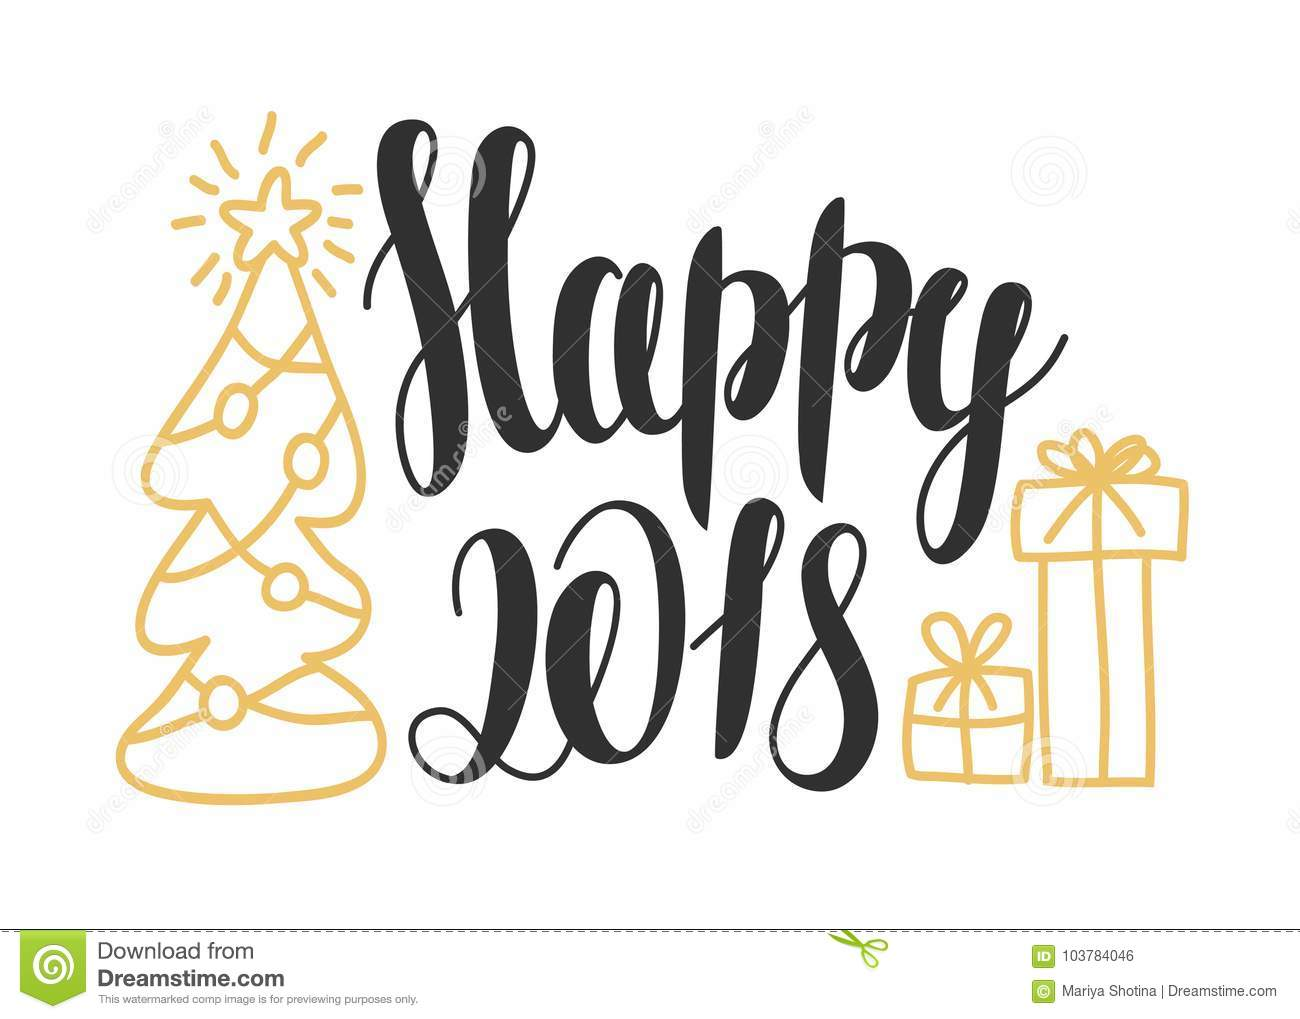 Happy 2018 - hand drawn design elements for greeting card. New year card design with lettering `Happy 2018`